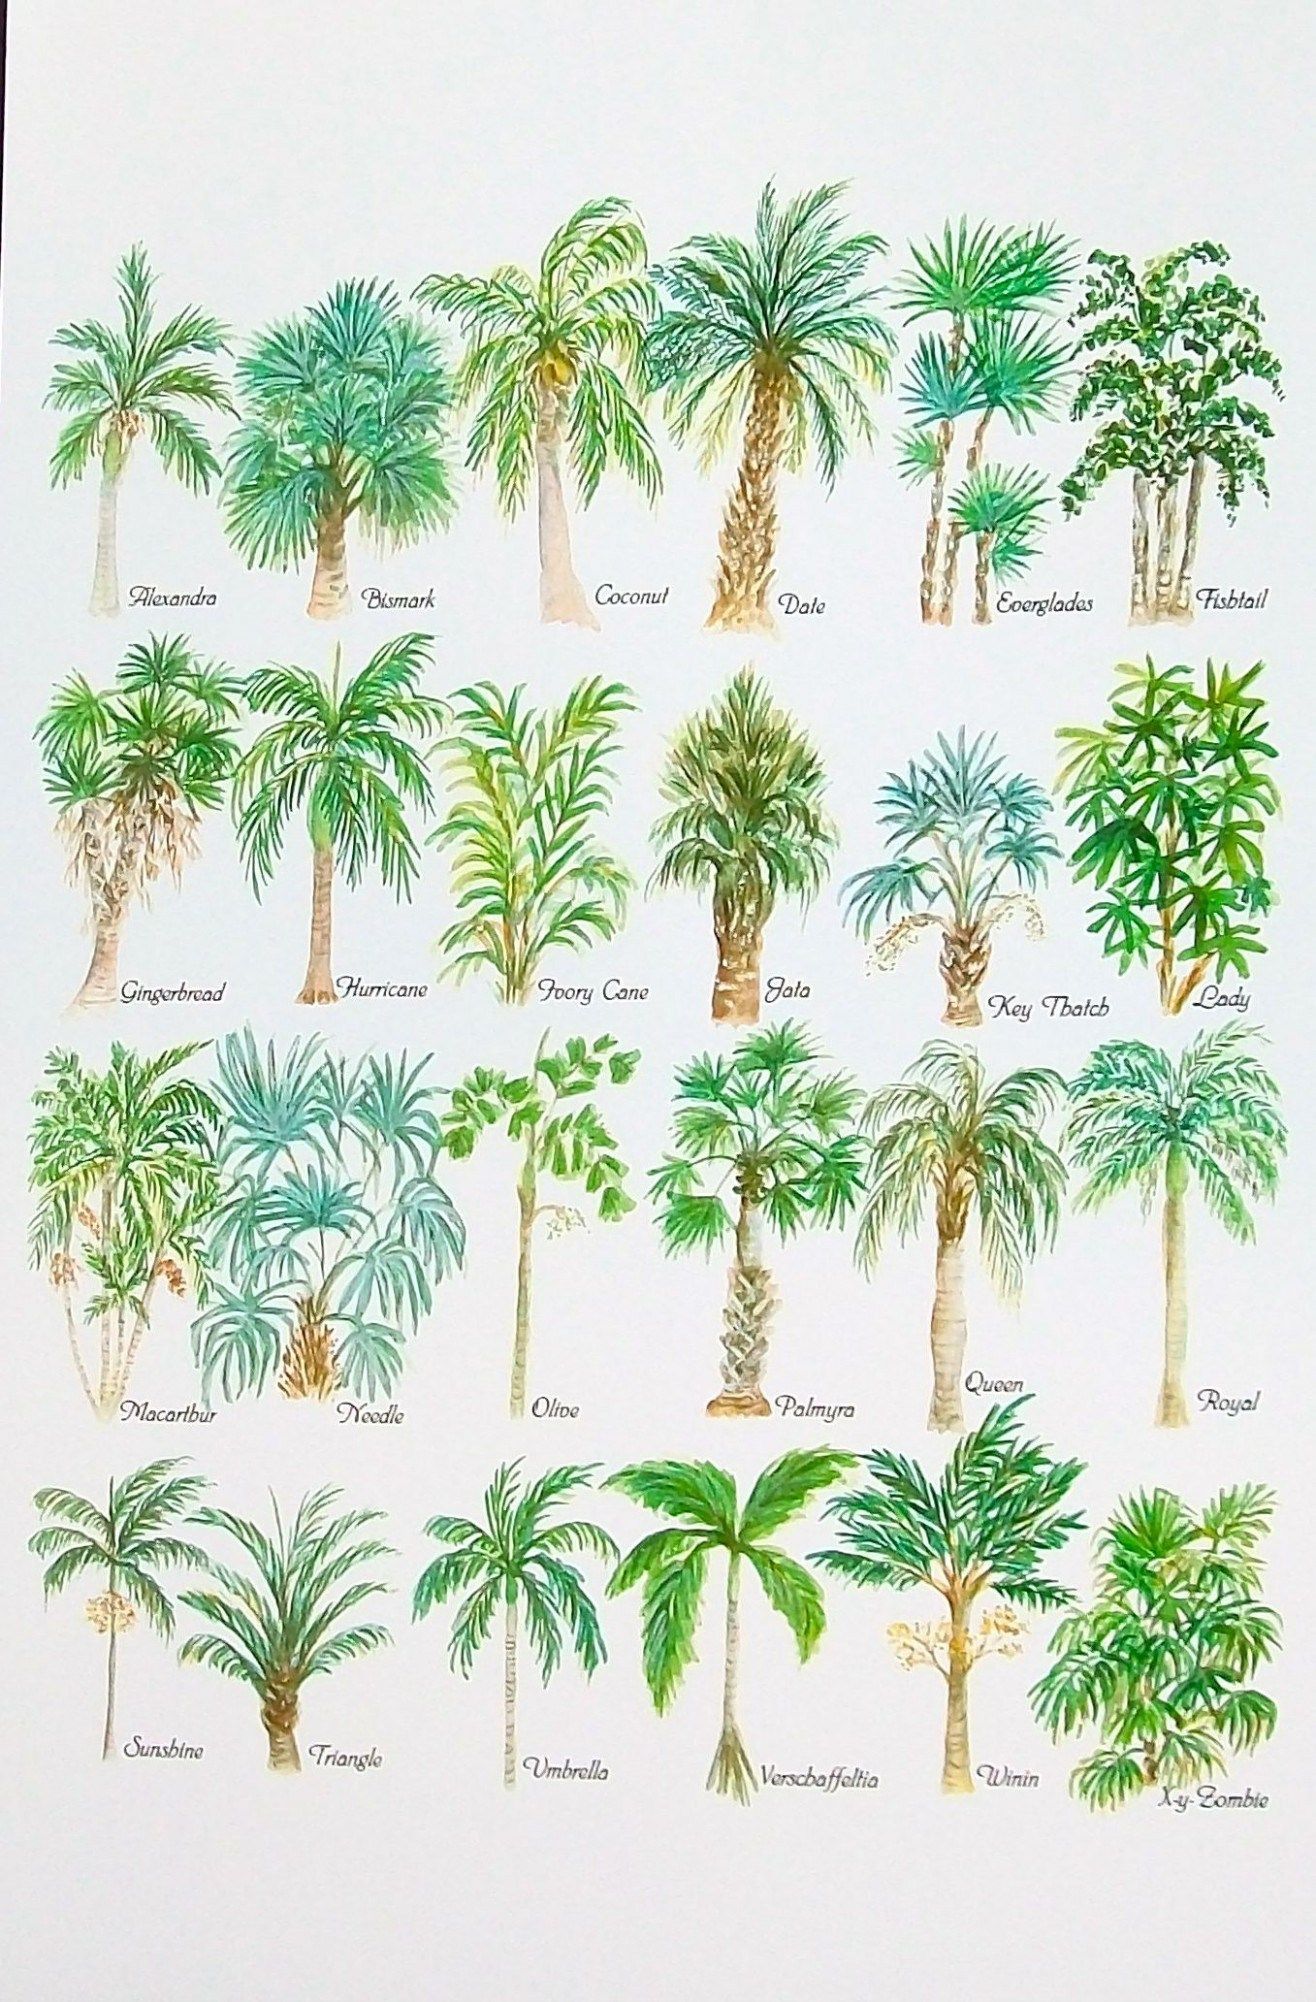 Pin By Dori Kiri On Survival Gear Knowledge Palm Tree Drawing Palm Trees Landscaping Palm Trees Painting